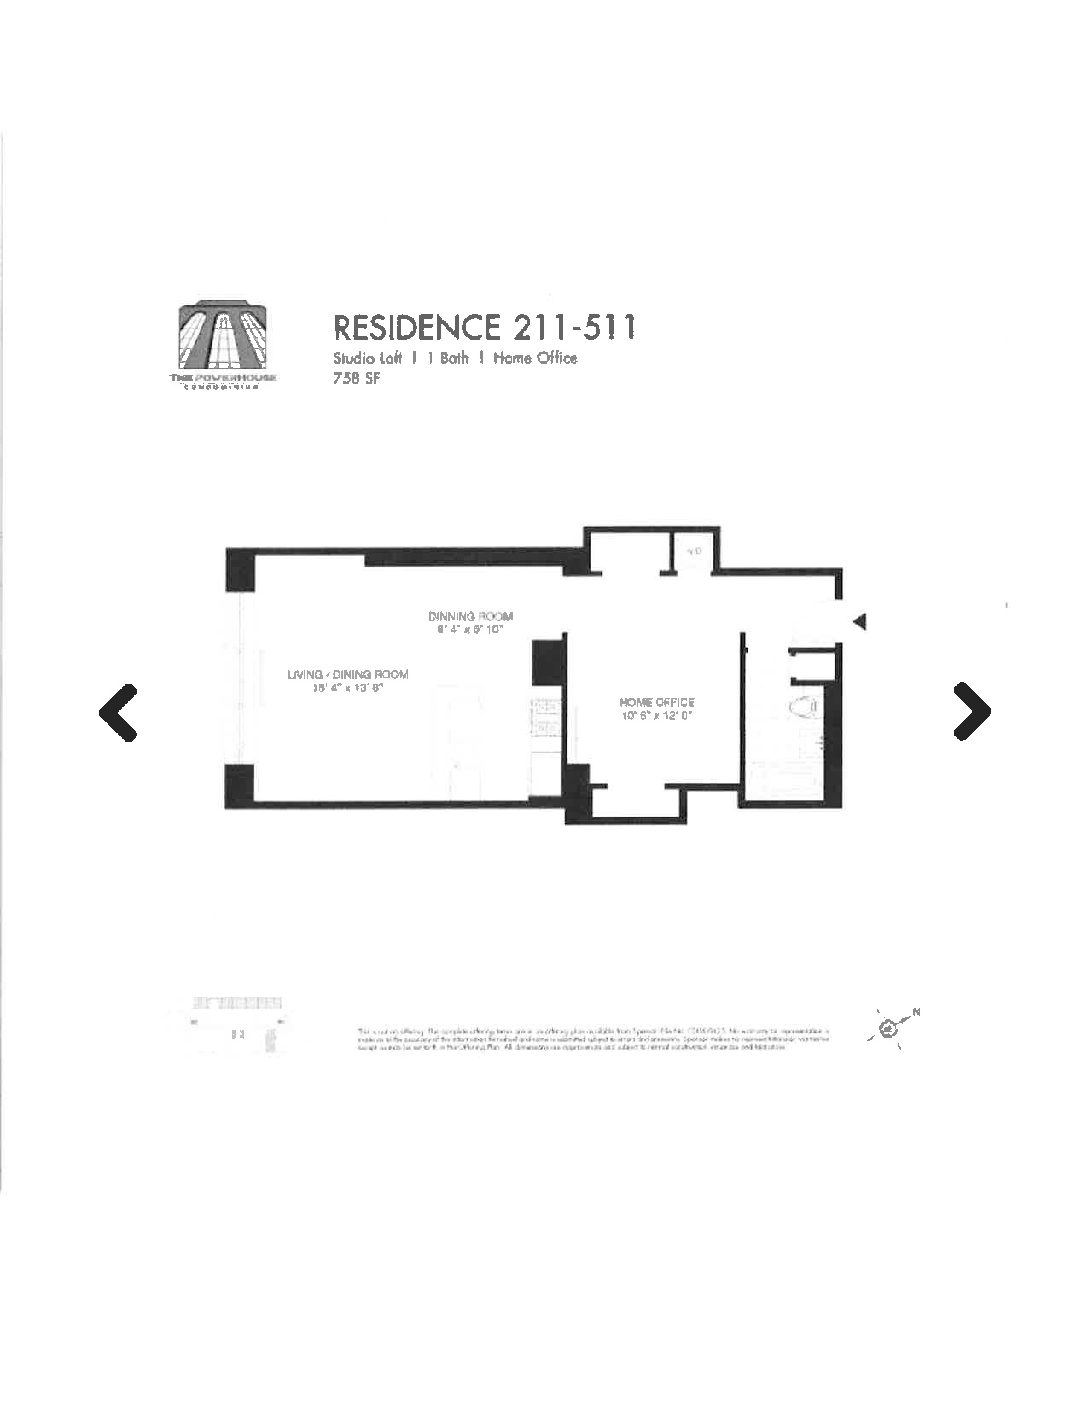 2 17 51st Avenue 511 At The Powerhouse Is A 1 Bedroom